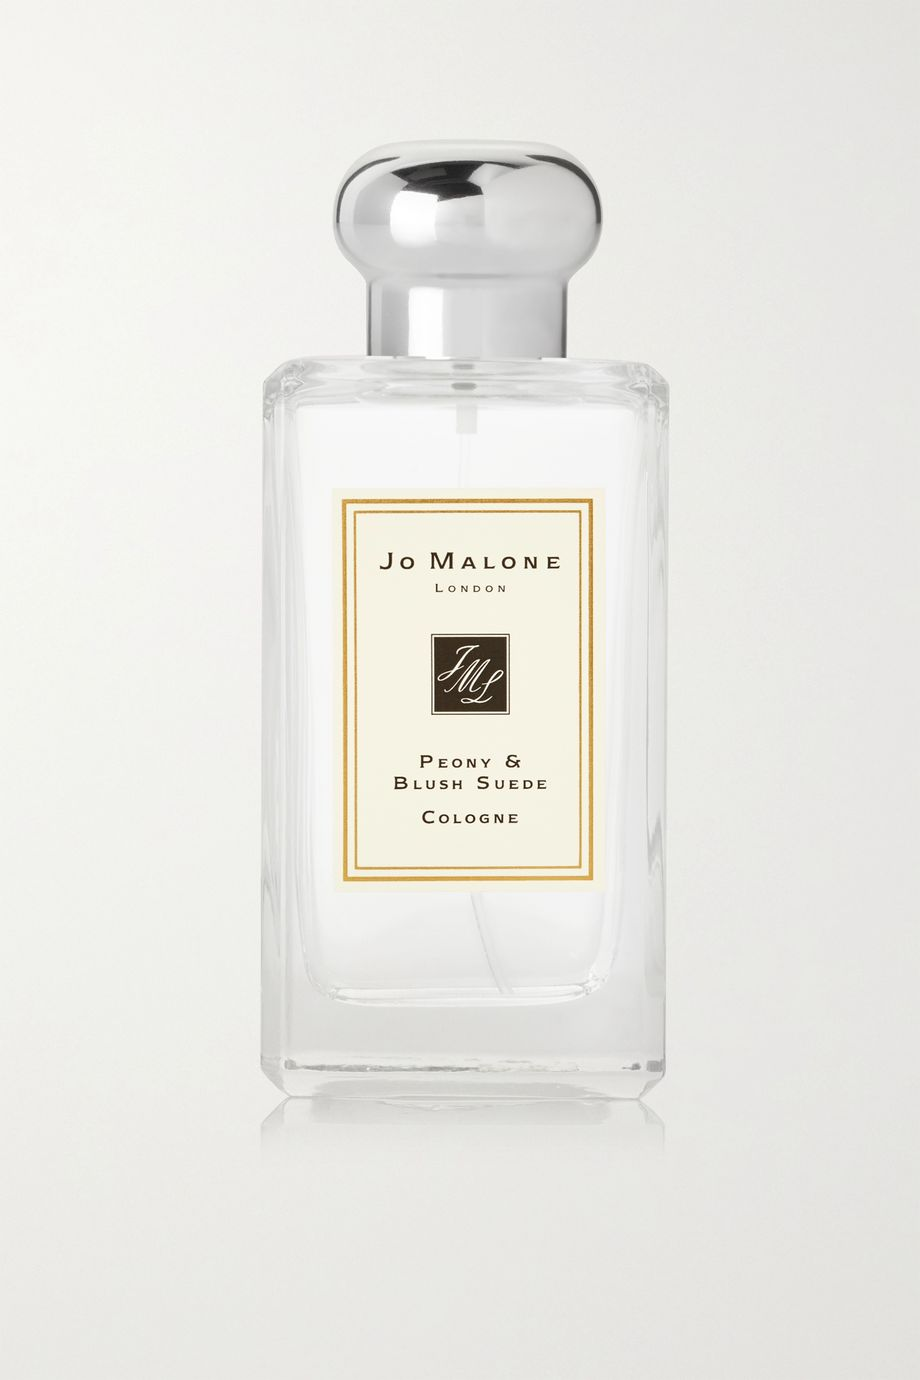 Jo Malone London Peony & Blush Suede Cologne, 100ml